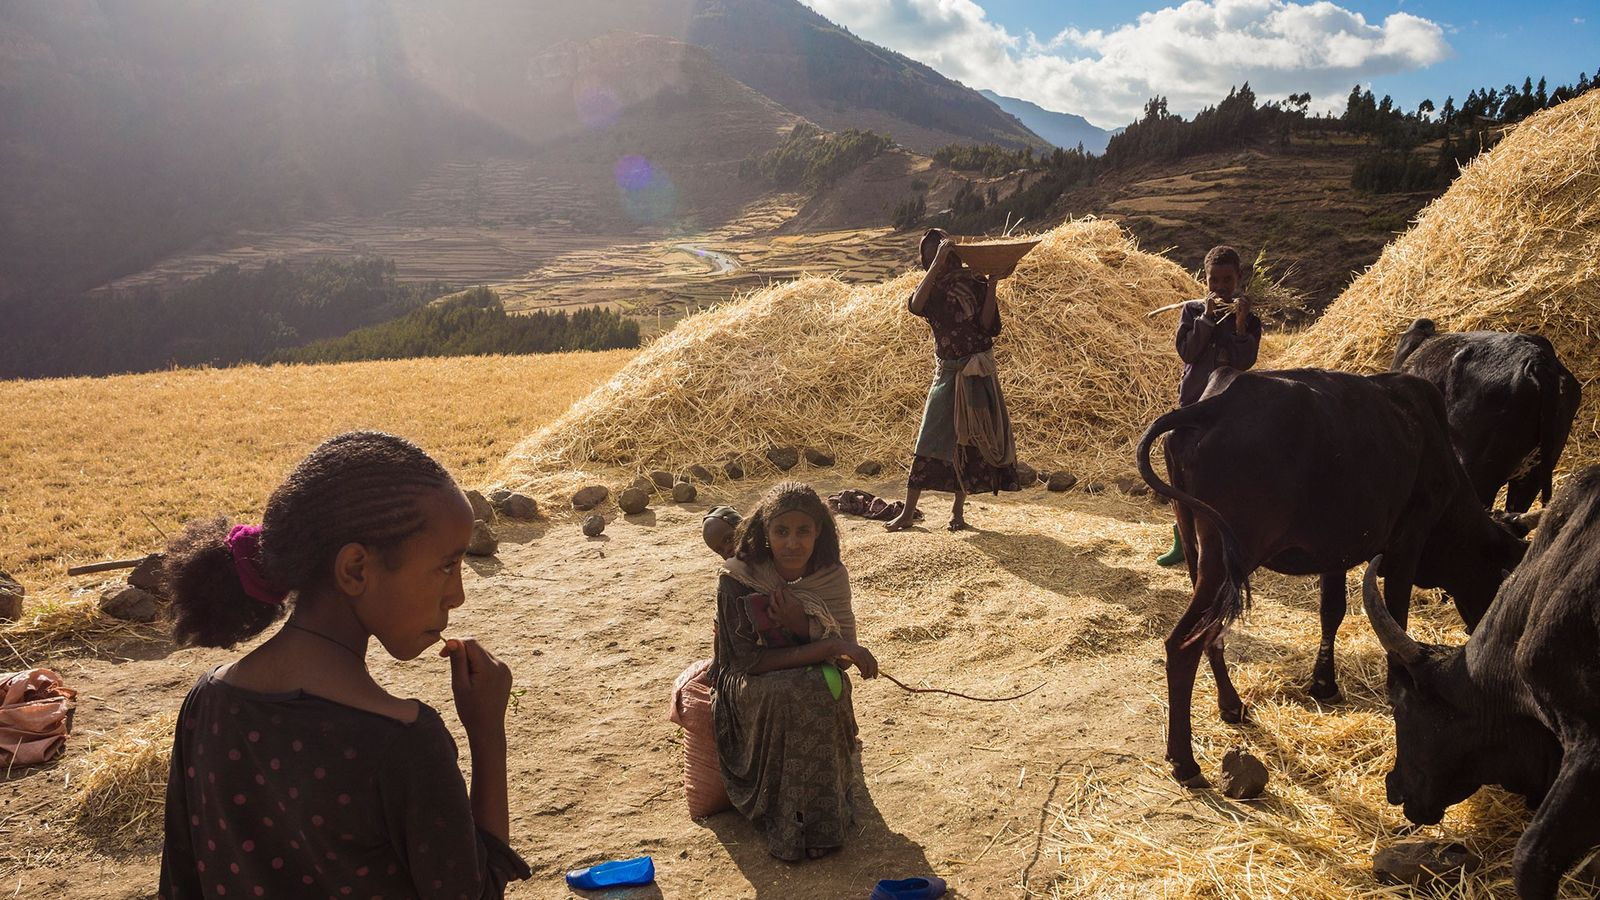 Using hand tools and draft animals, a family harvests wheat in Ethiopia's famine-prone highlands.